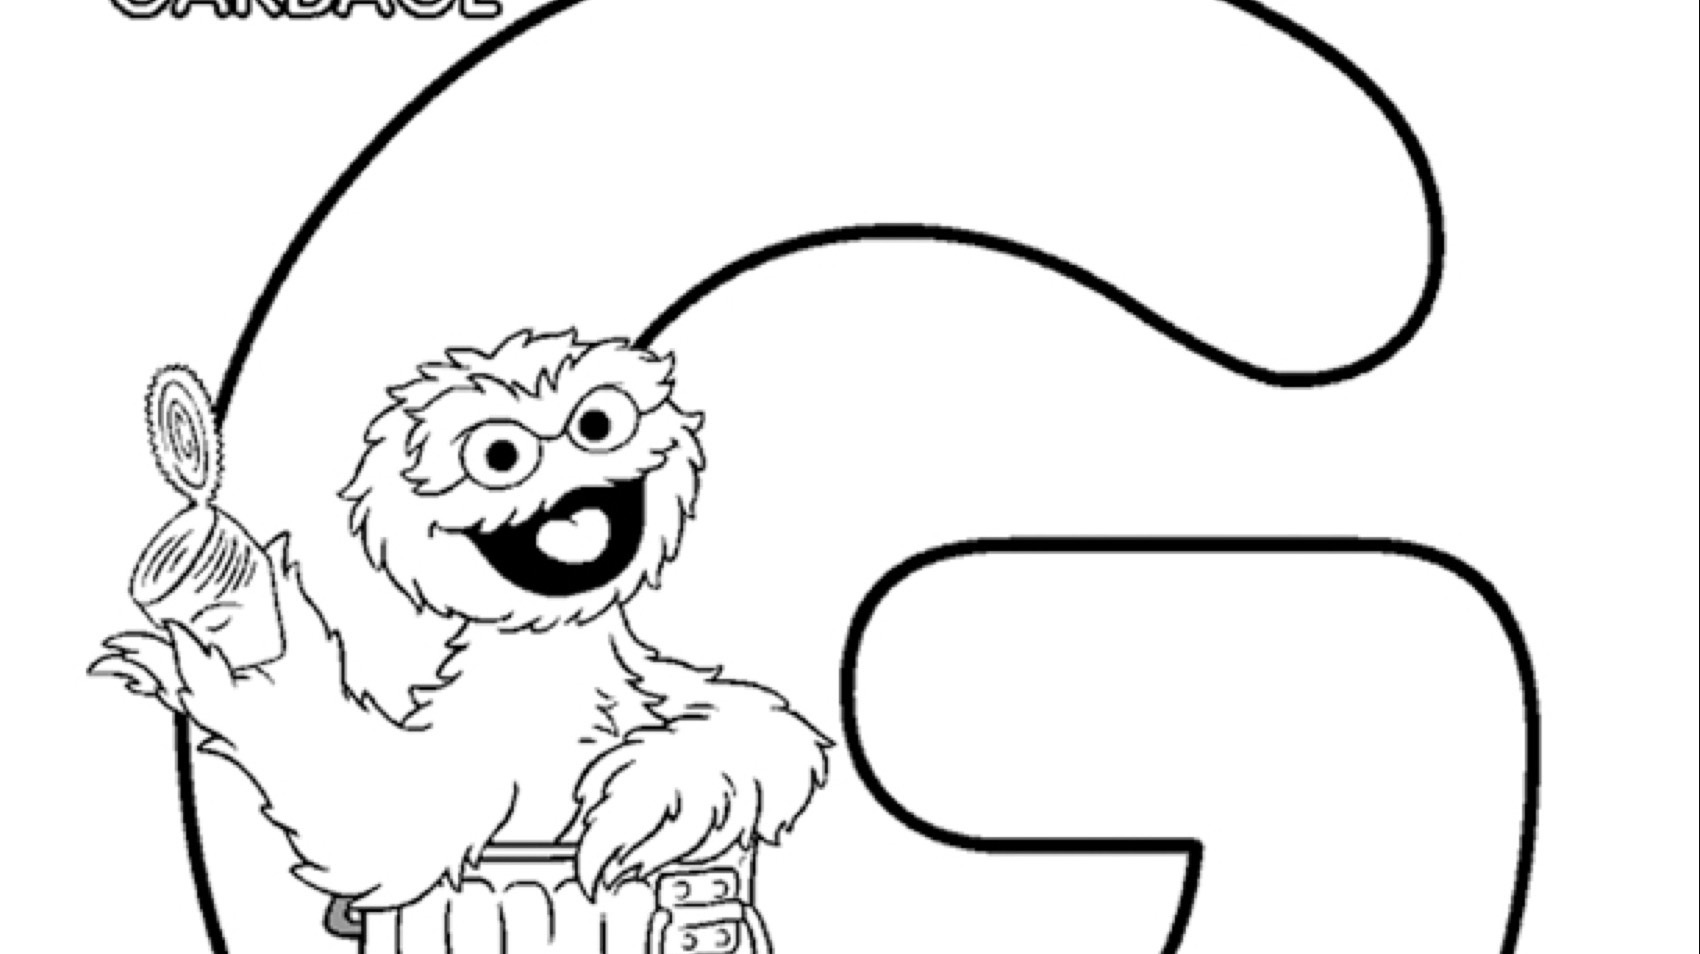 The Letter G Coloring Page Kids Coloring Pbs Kids For Parents